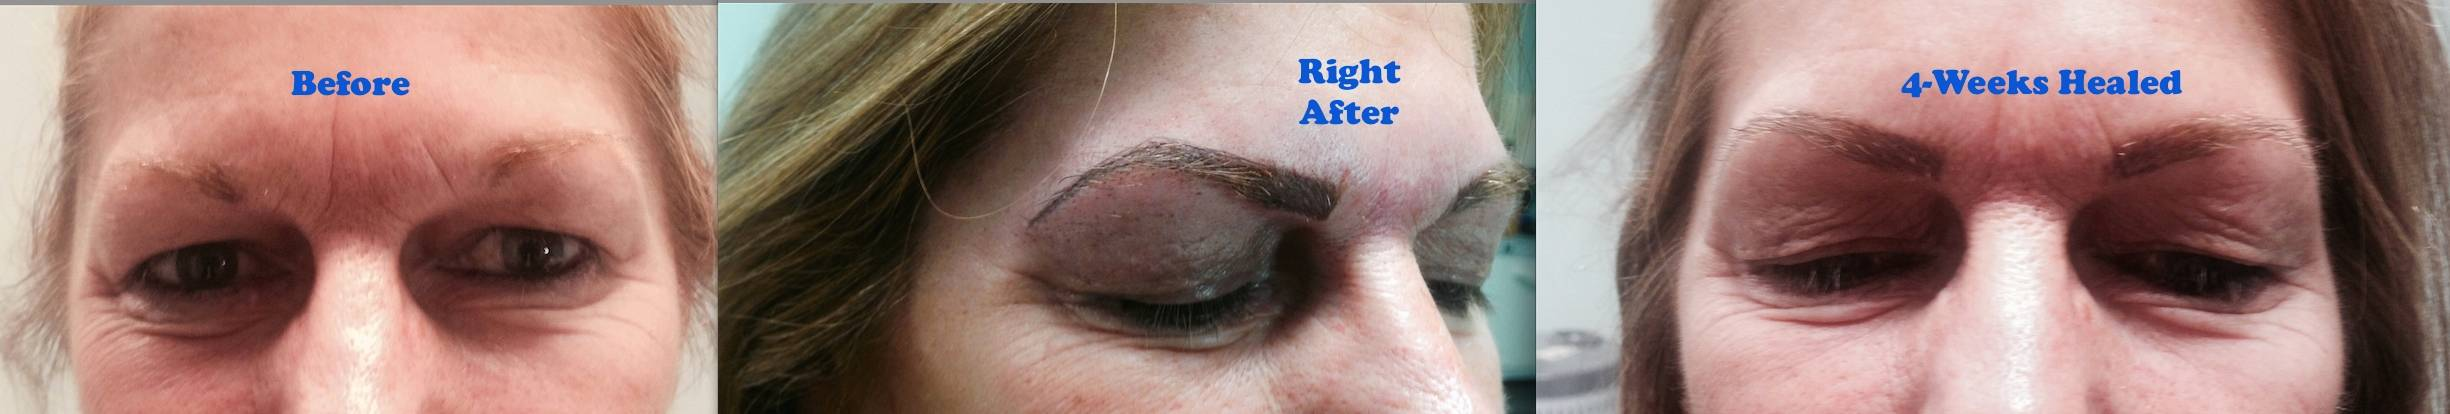 Eyebrows Before, After and Healed